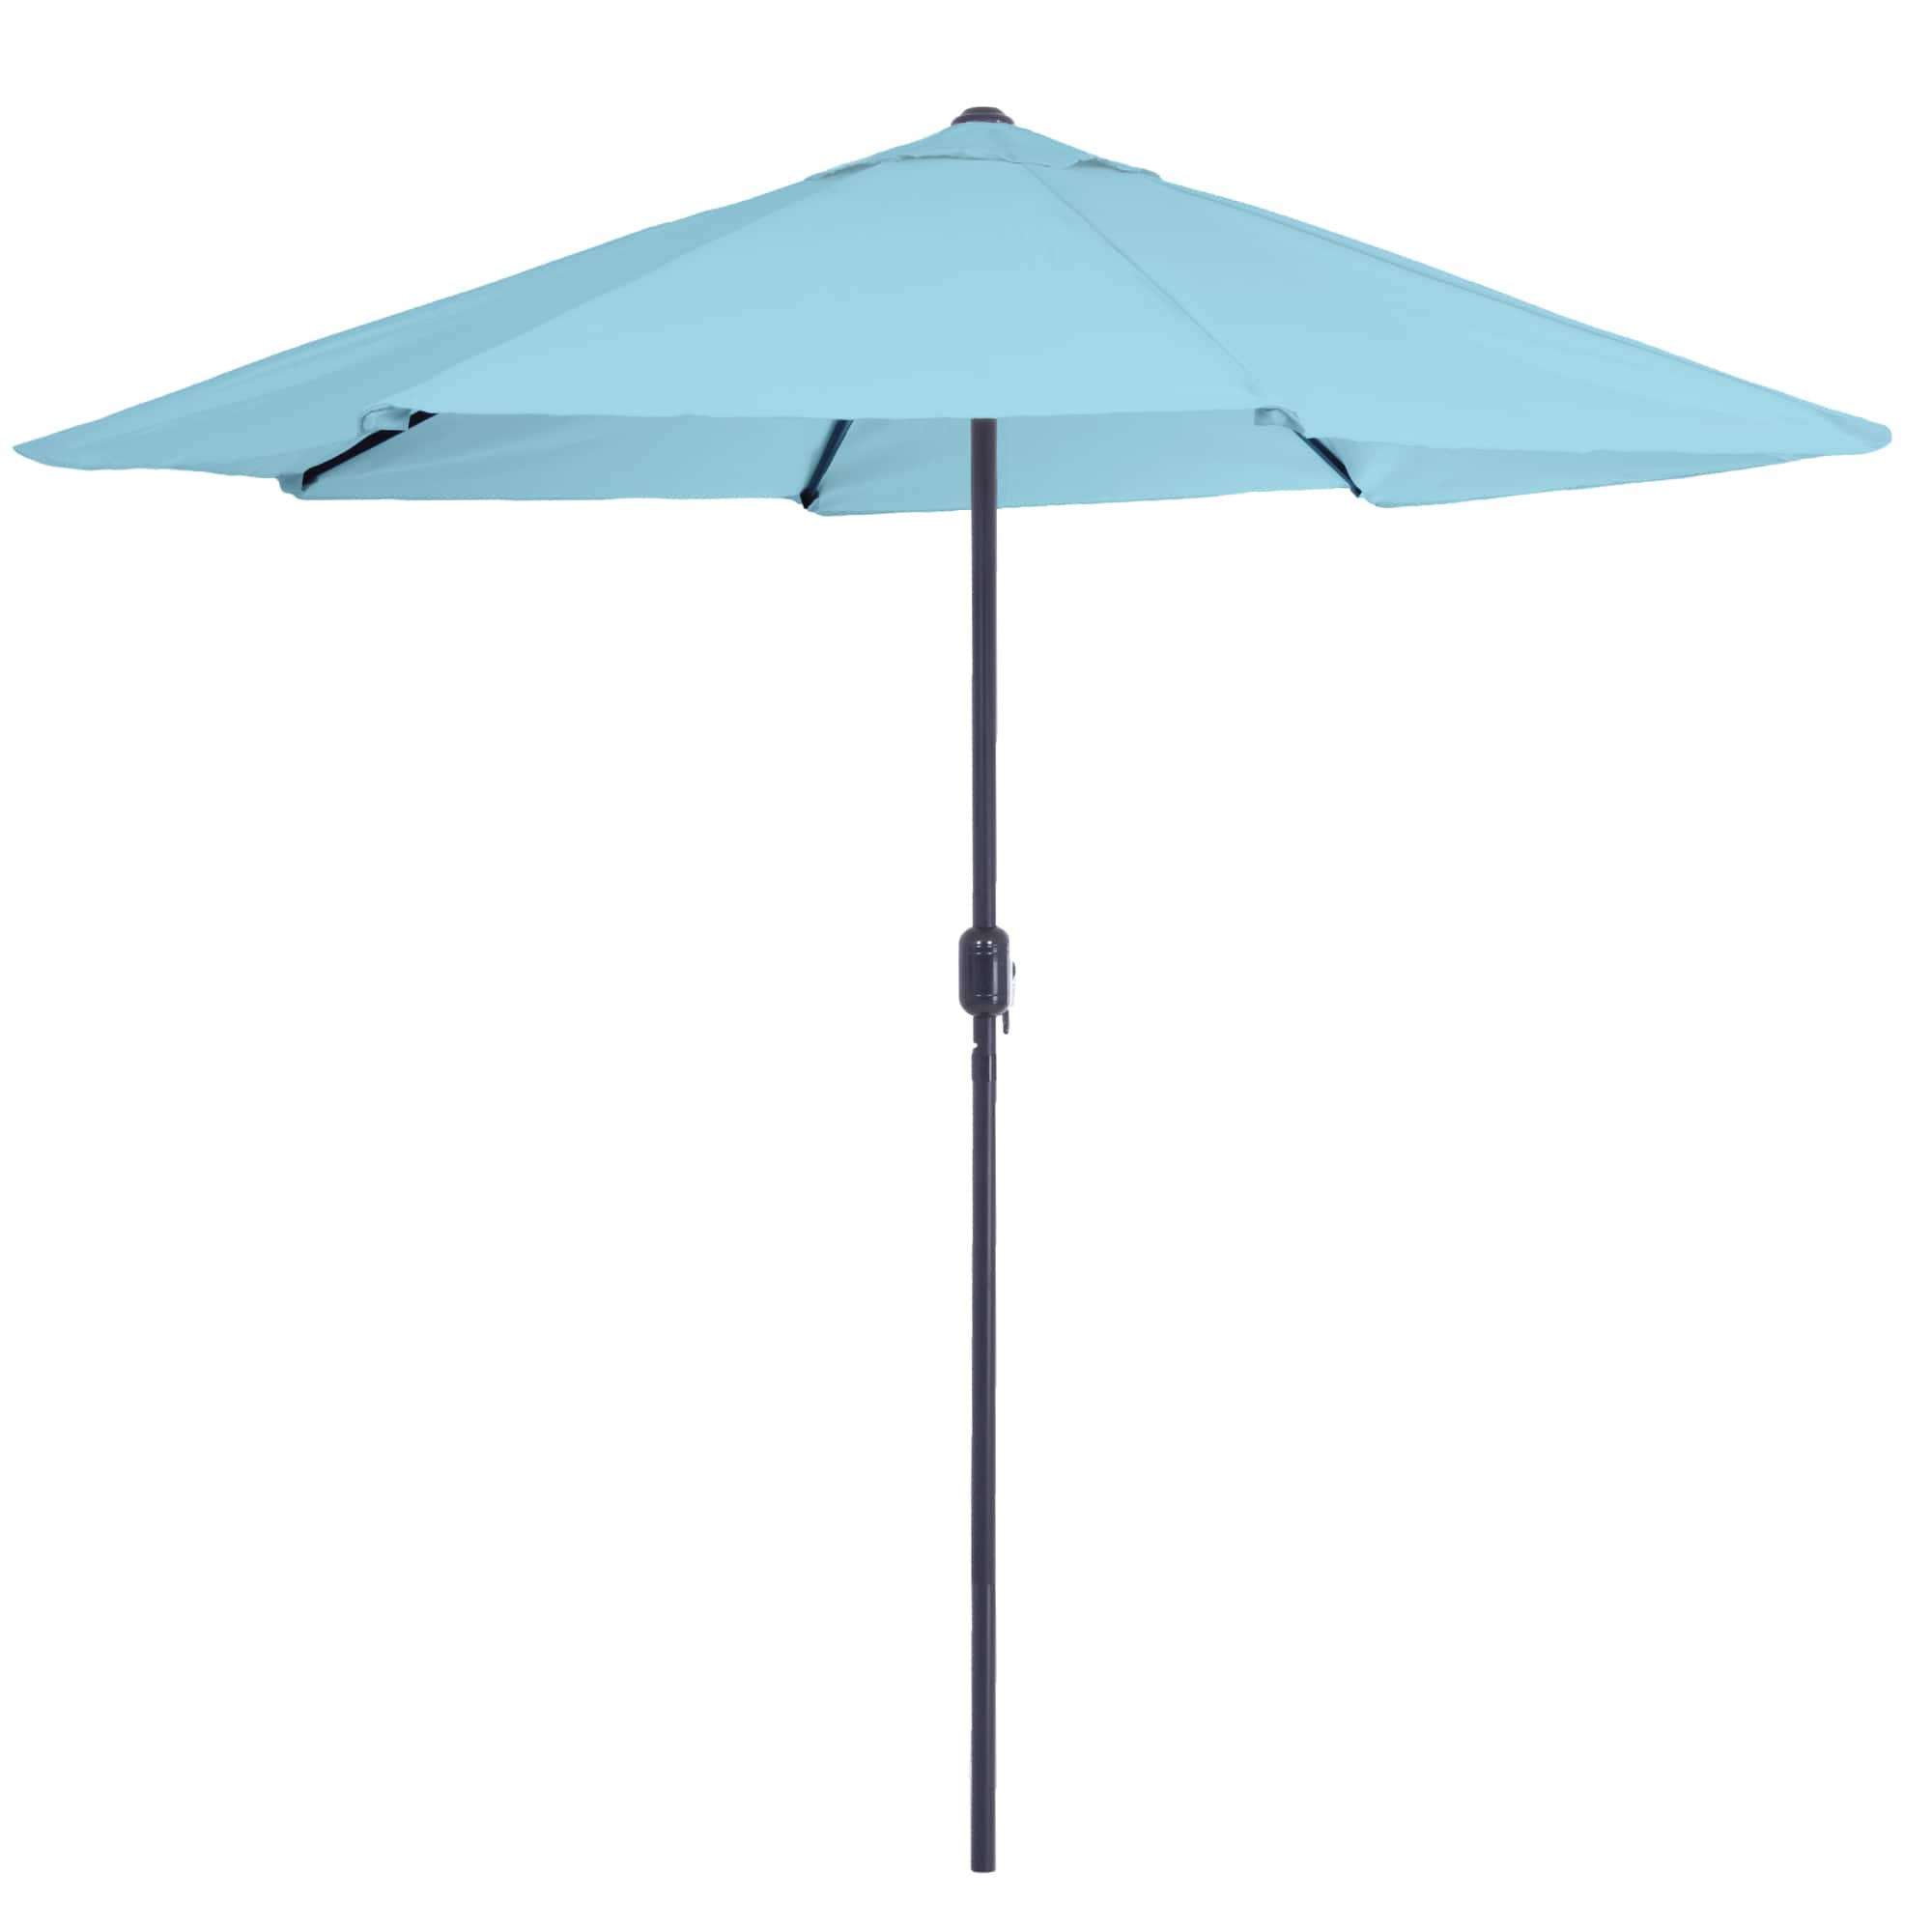 grey at garden umbrella m q b prd overhanging parasol departments diy bq mallorca